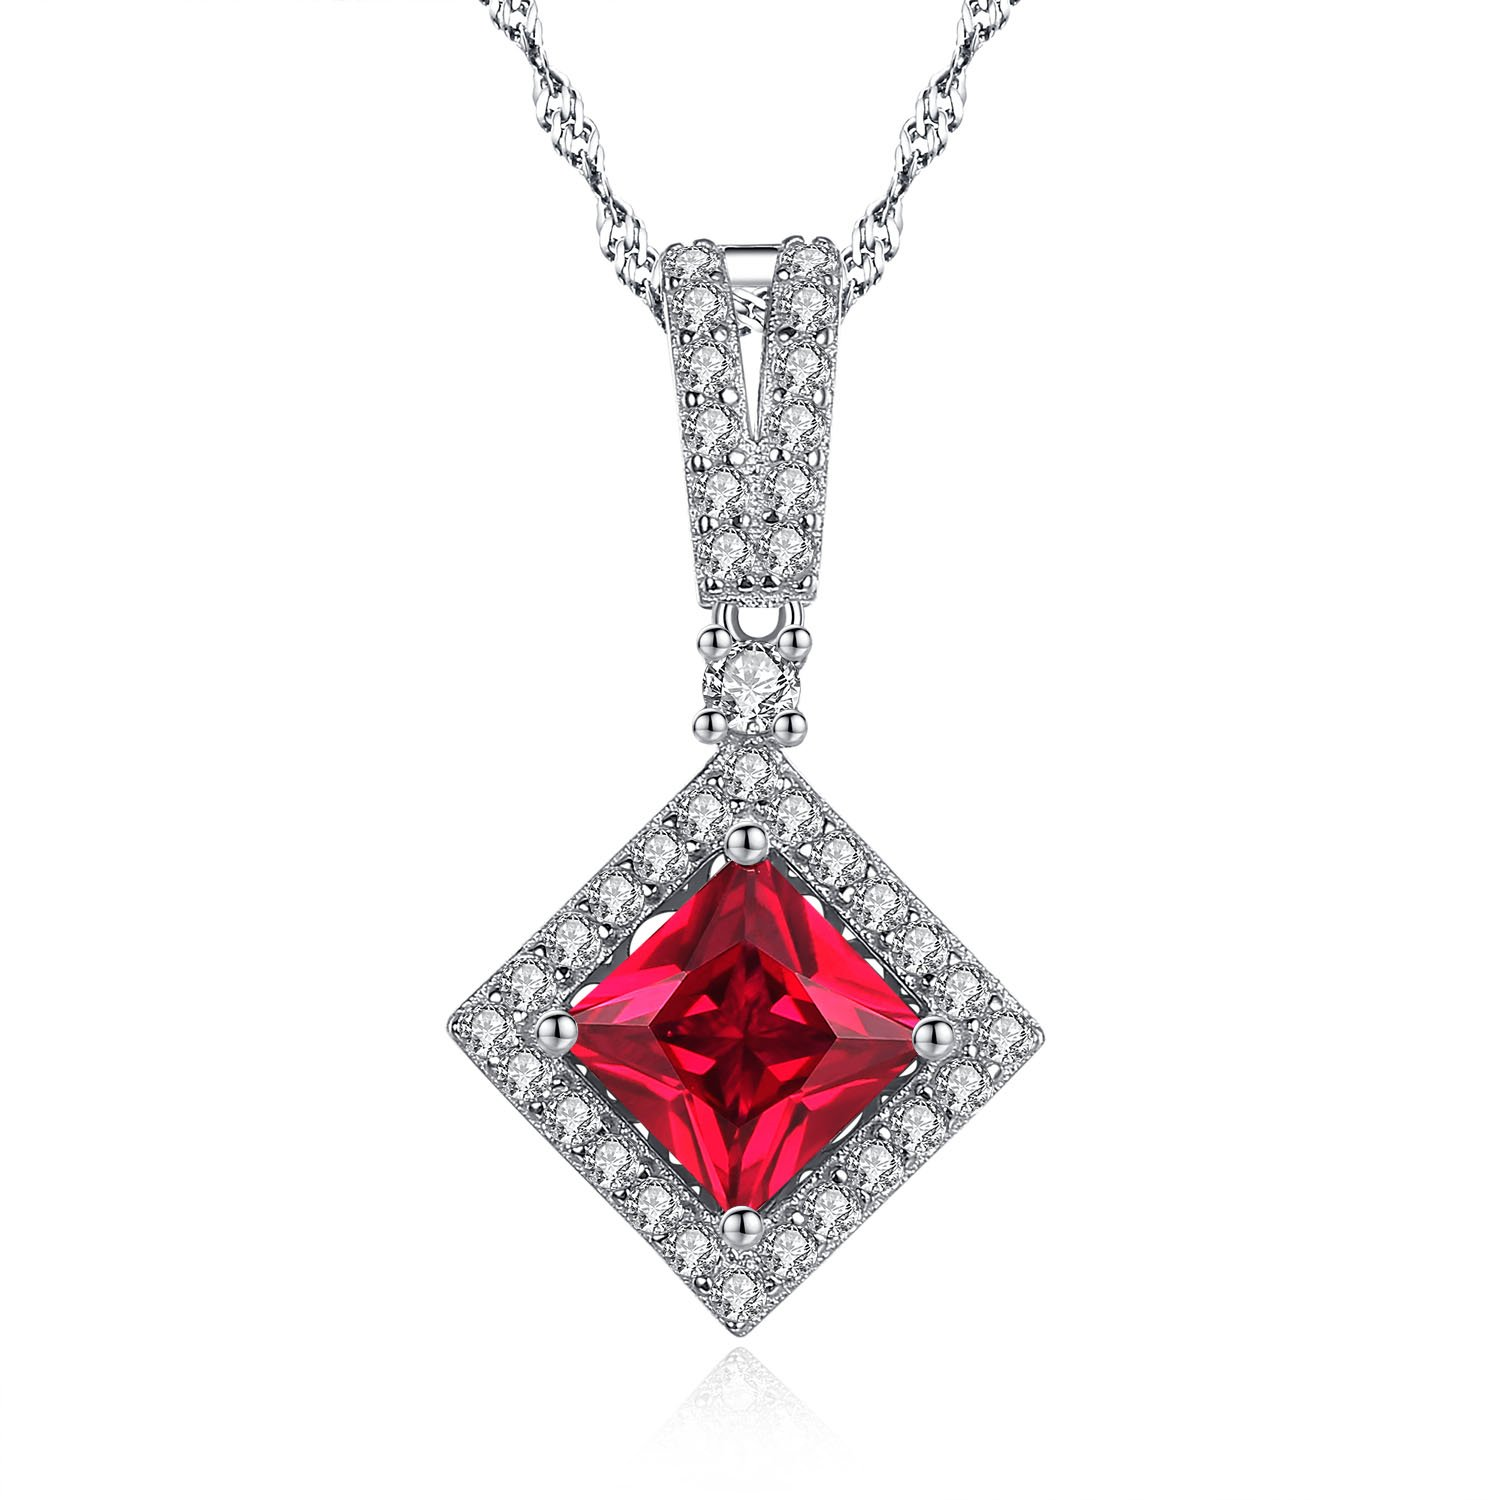 Mabella Princess Cut Simulated Ruby Halo Necklace Cubic Zirconia with 925 Sterling Silver Pendant, Elegant Jewelry Gift for Women